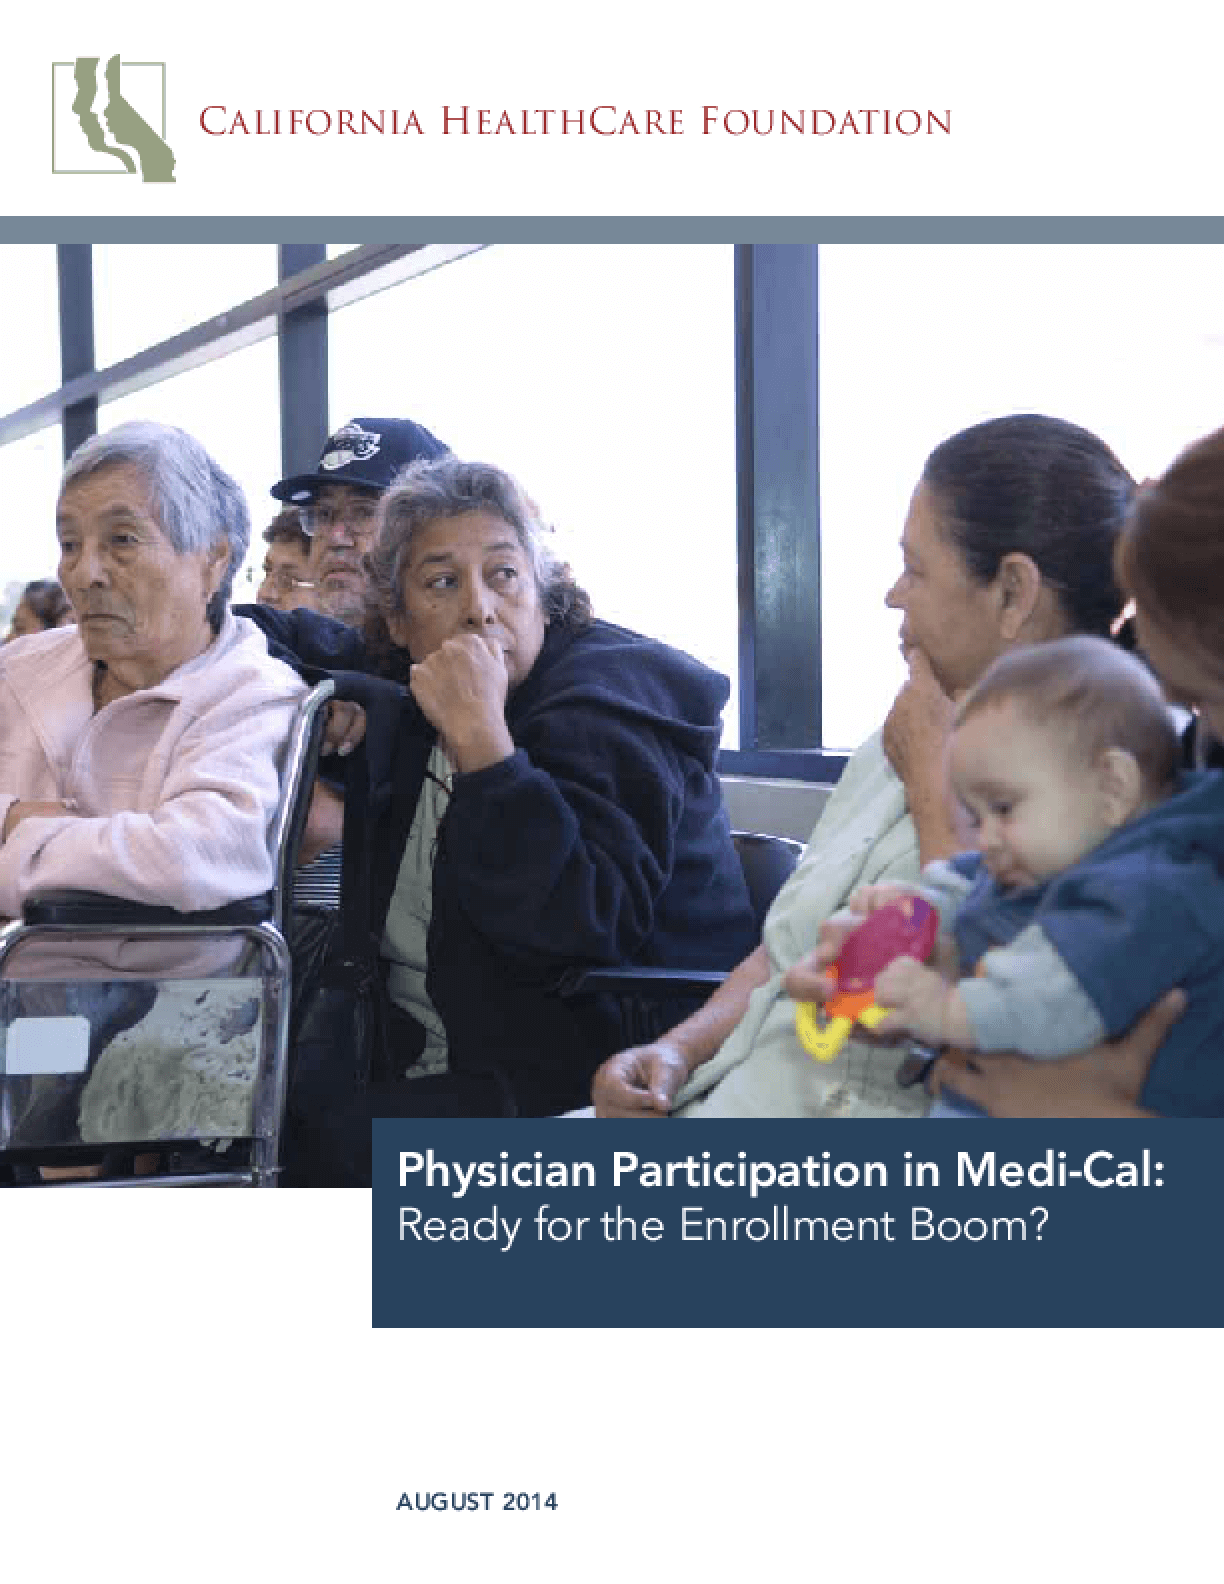 Physician Participation in Medi-Cal: Ready for the Enrollment Boom?